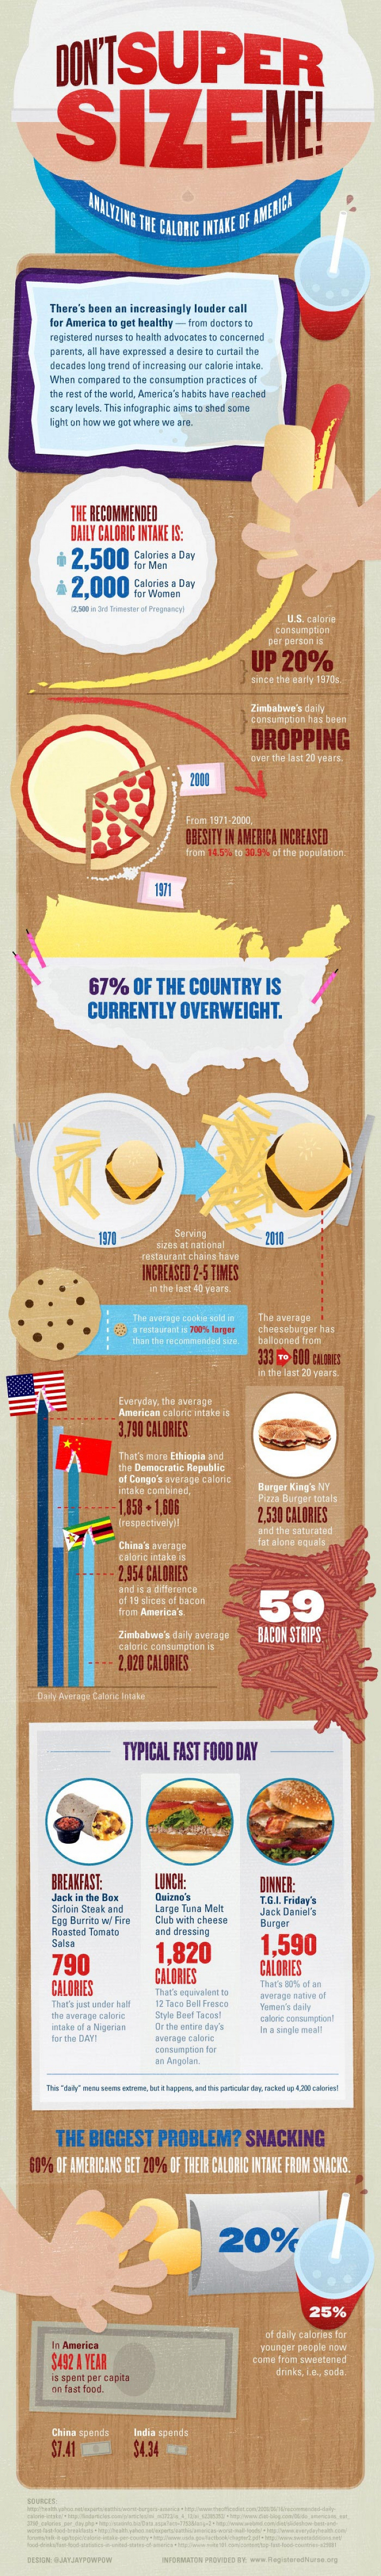 Daily Calorie Intake Facts